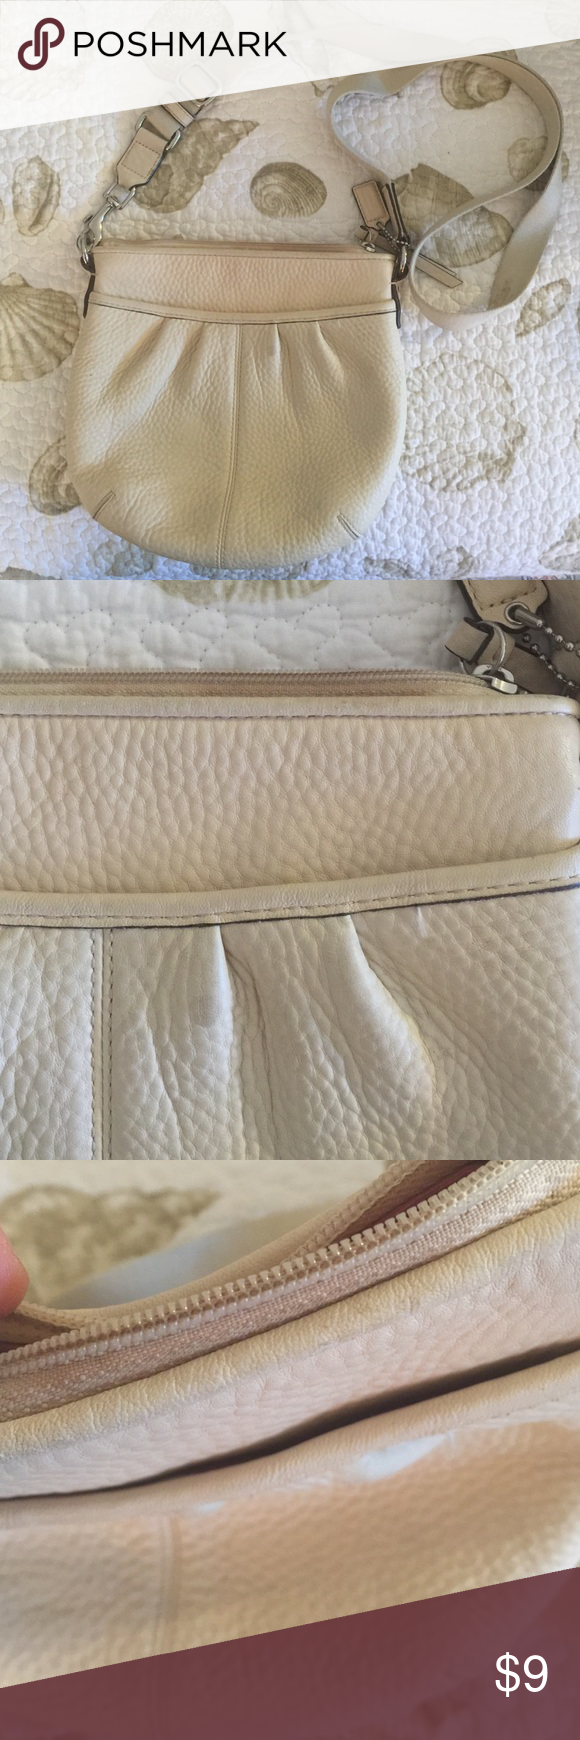 "Coach Cream/Off White Pebbled Leather Bag Slight discoloration on the front pocket and the zipper. Stains on the strap also, as seen in picture. But hugely discounted to make up for it! Bag measures 8"" at entry zipper. 9"" deep. Coach Bags Crossbody Bags"